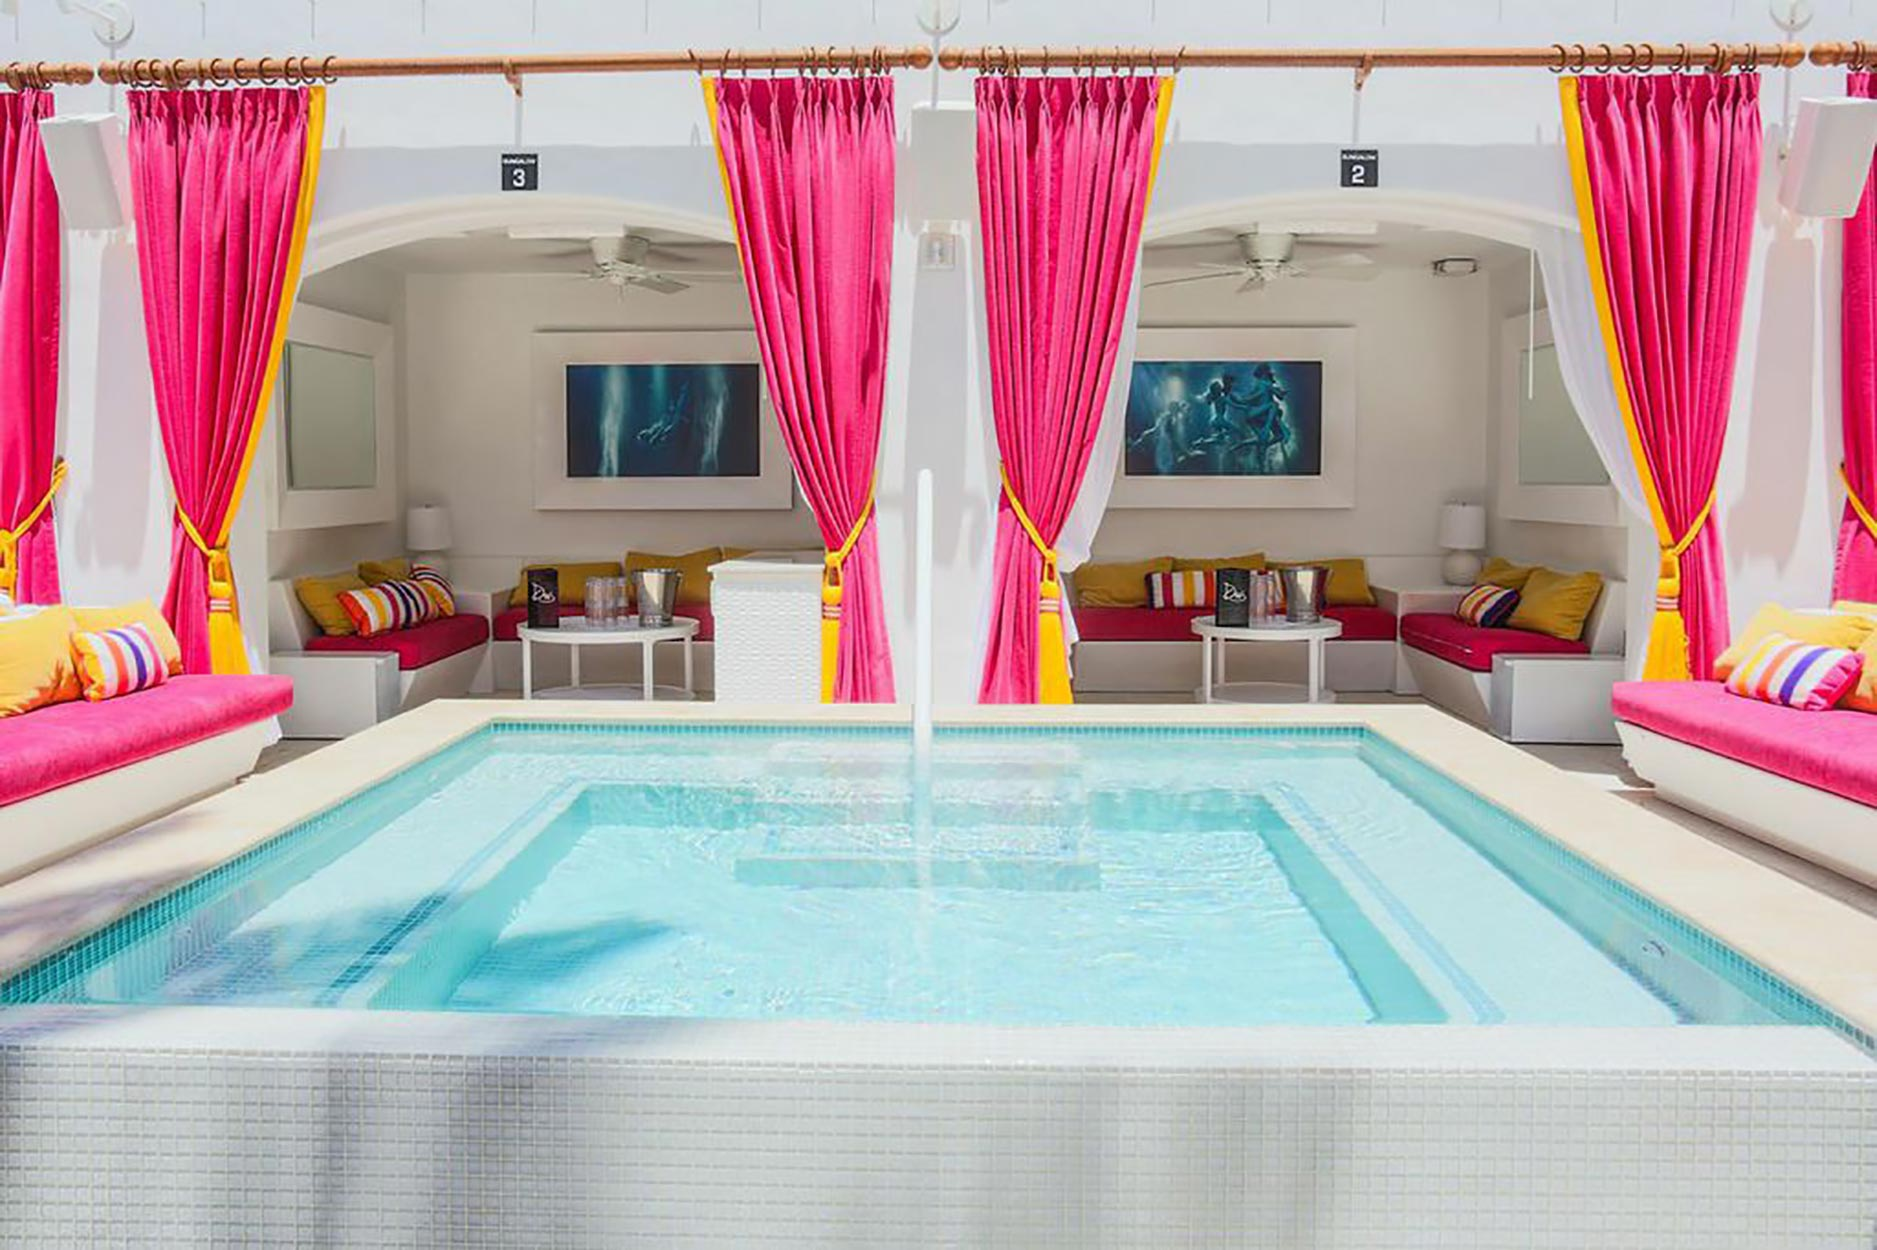 drais beach club vip tables daybeds cabanas vip host